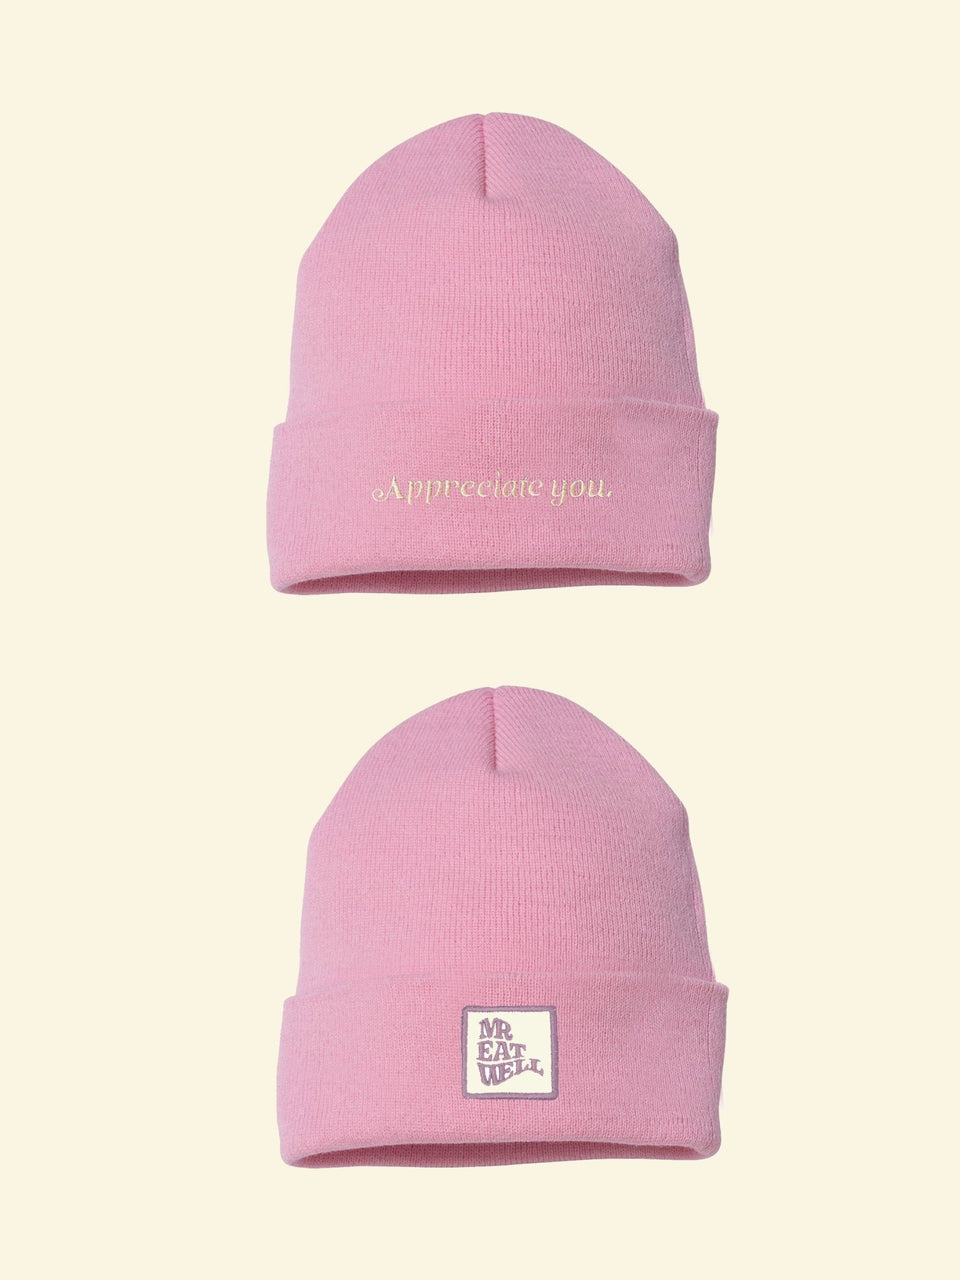 Appreciate You + Logo Beanie in a Bunch of Colors (IN STOCK, SHIPS IMMEDIATELY) - MR EATWELL